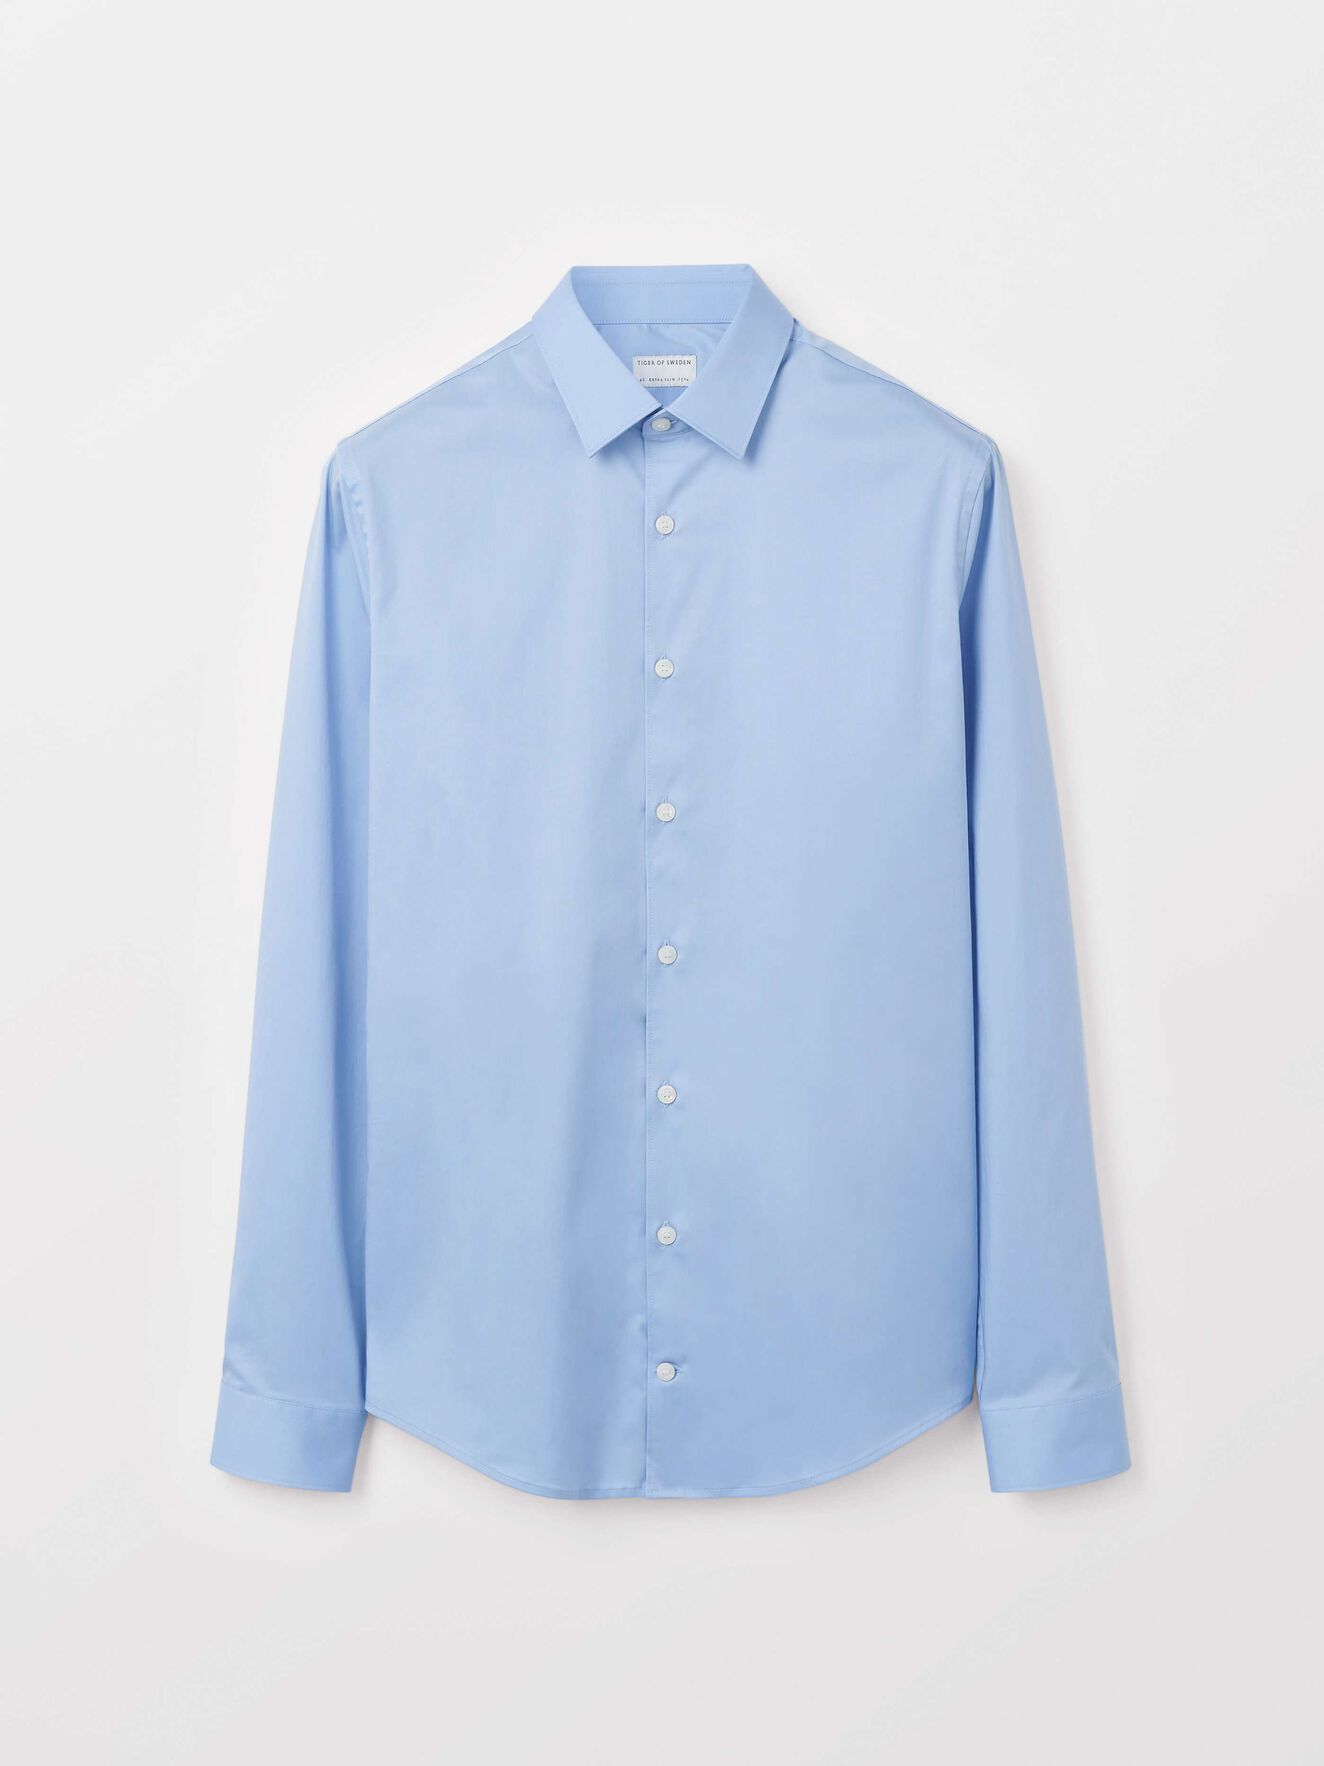 Filbrodie Shirt in Airy Blue from Tiger of Sweden